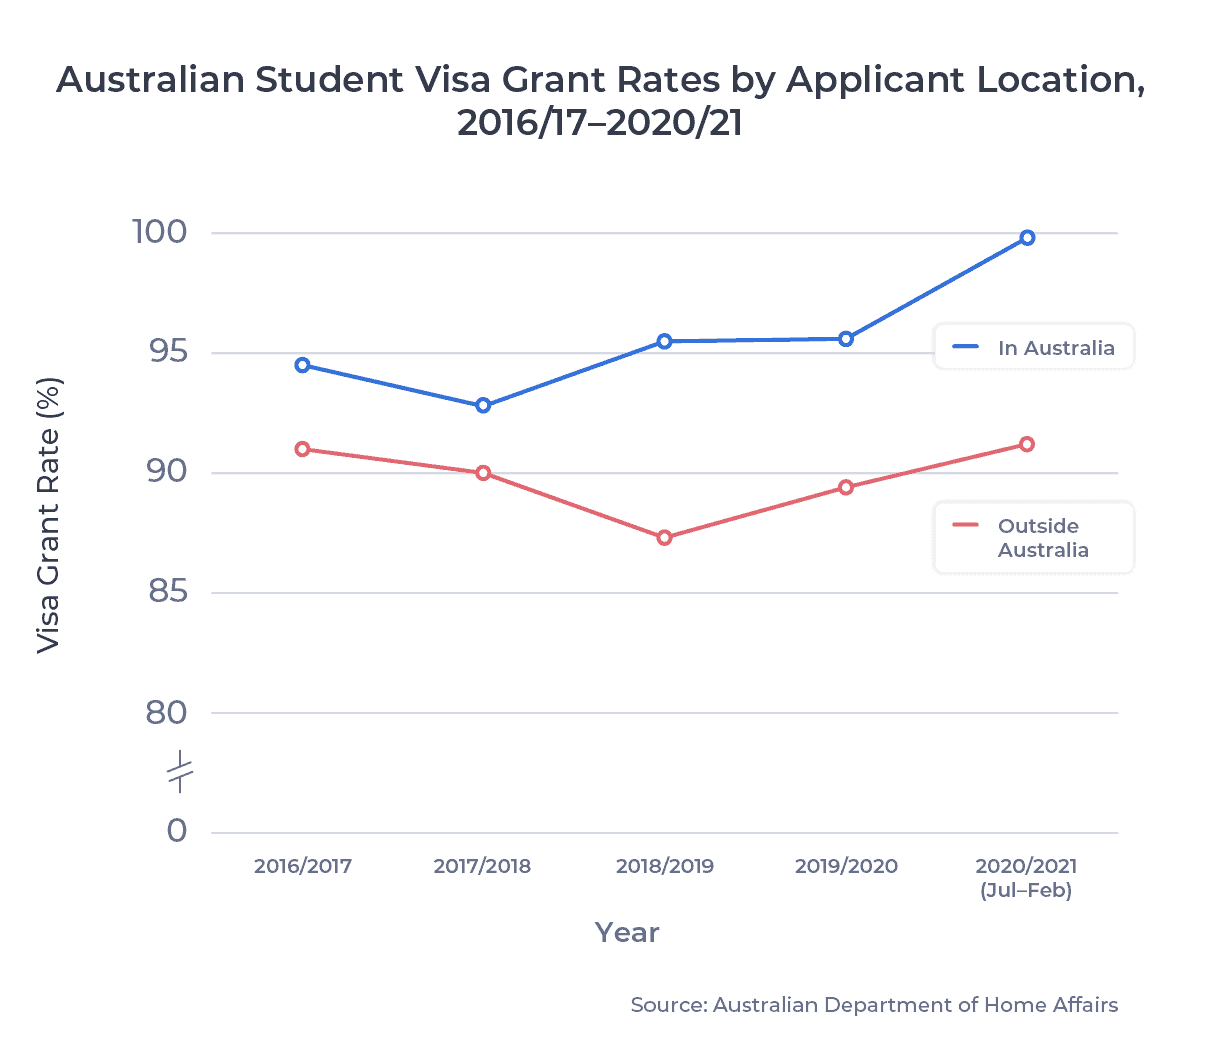 Australian Student Visa Grant Rates by Applicant Location, 2016/17–2020/21